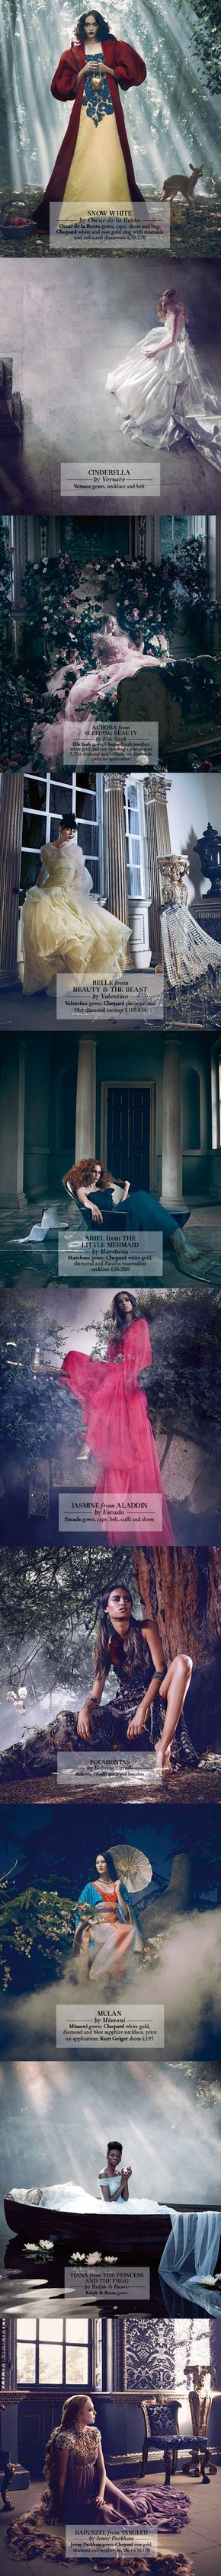 """Disney princesses Christmas campaign """"Once Upon A Dream"""" for Harrod's department store, London."""